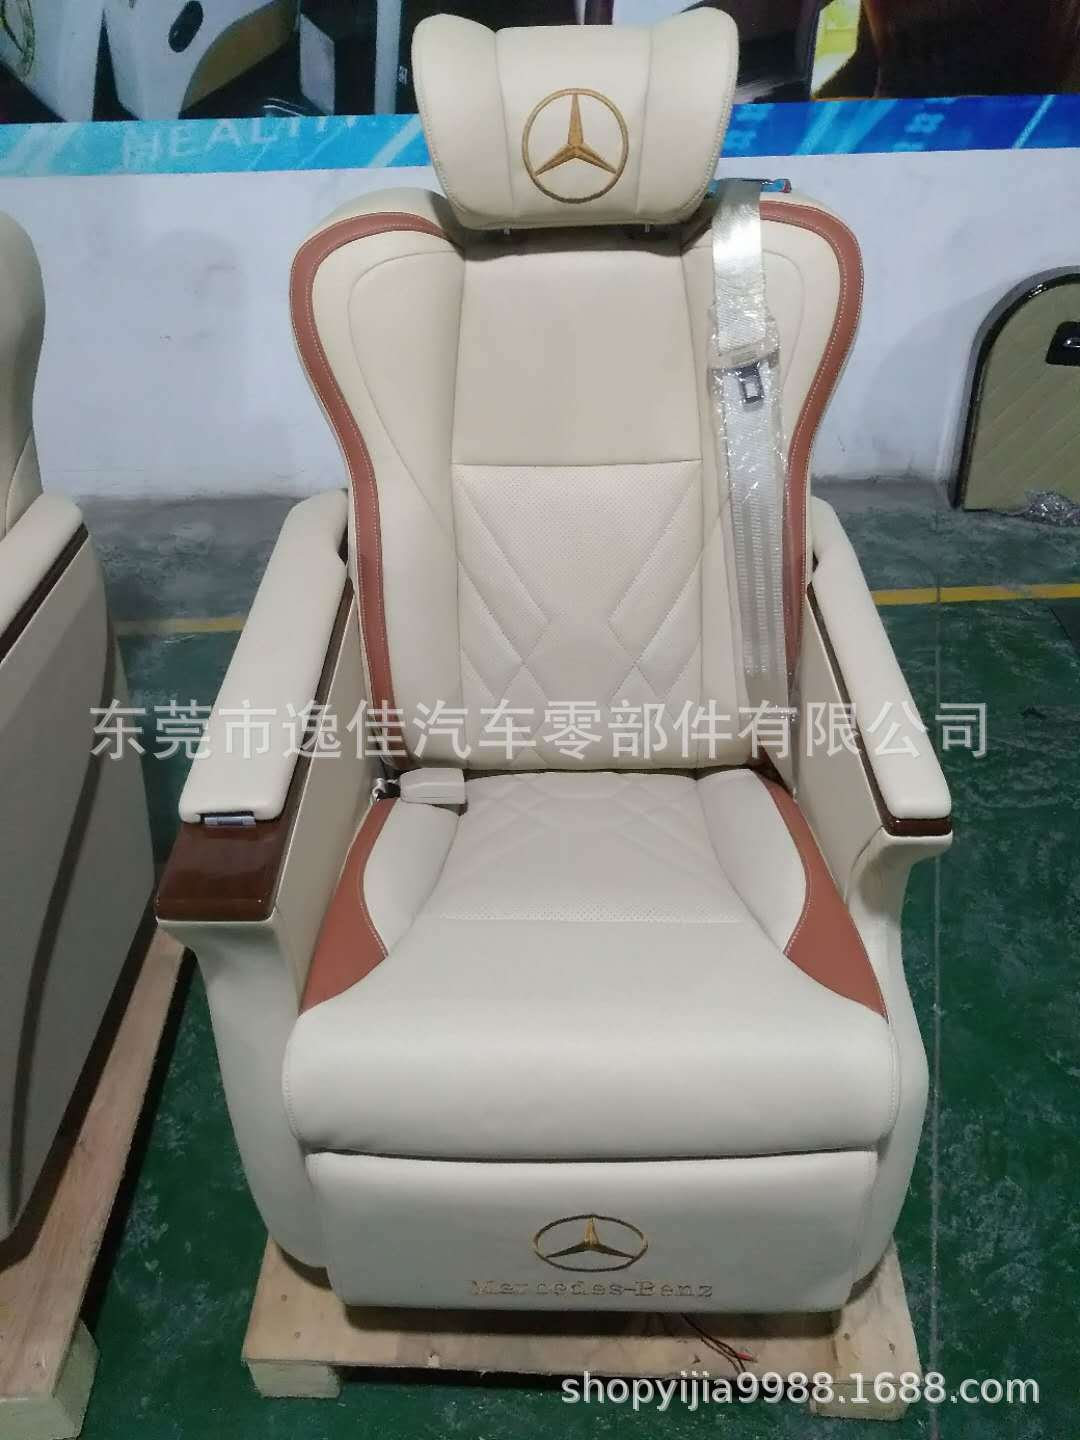 Business car power seat air seat car seat smart seat outdoor seat dining chair